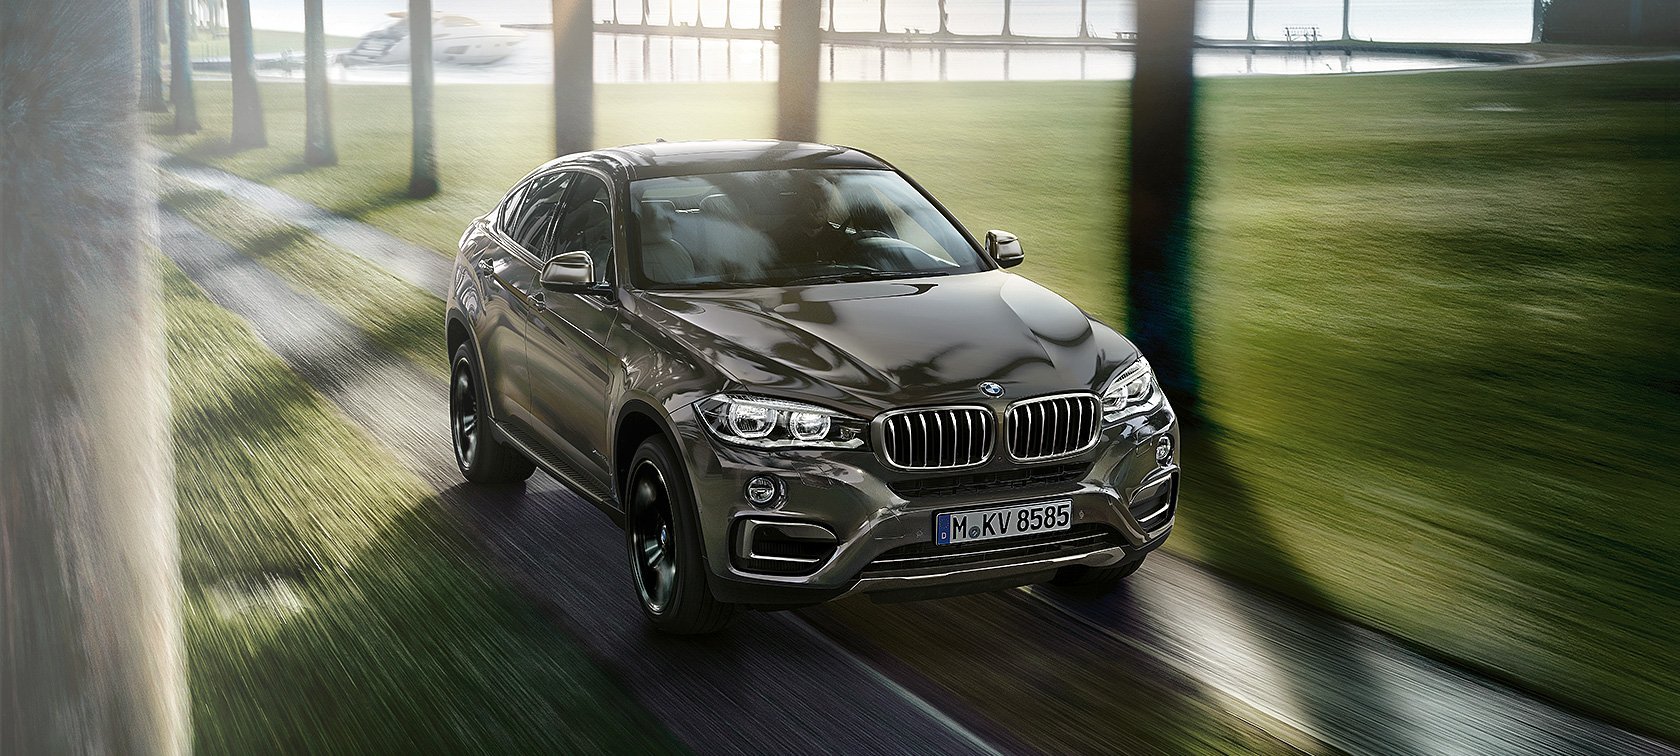 BMW-X6-cartec-group-hlavni.jpg